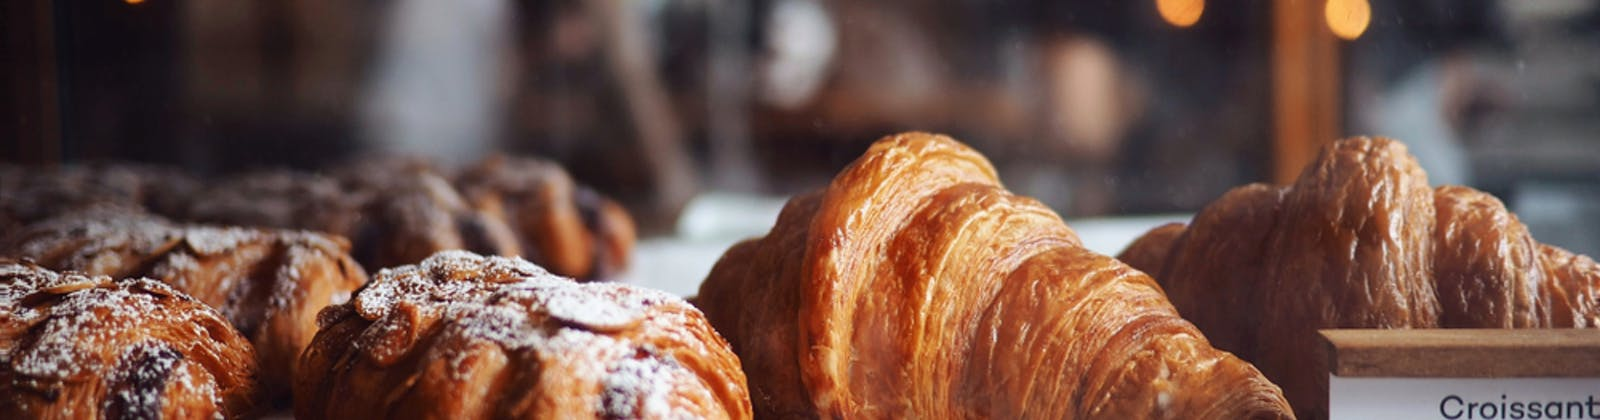 Hot croissants in oven